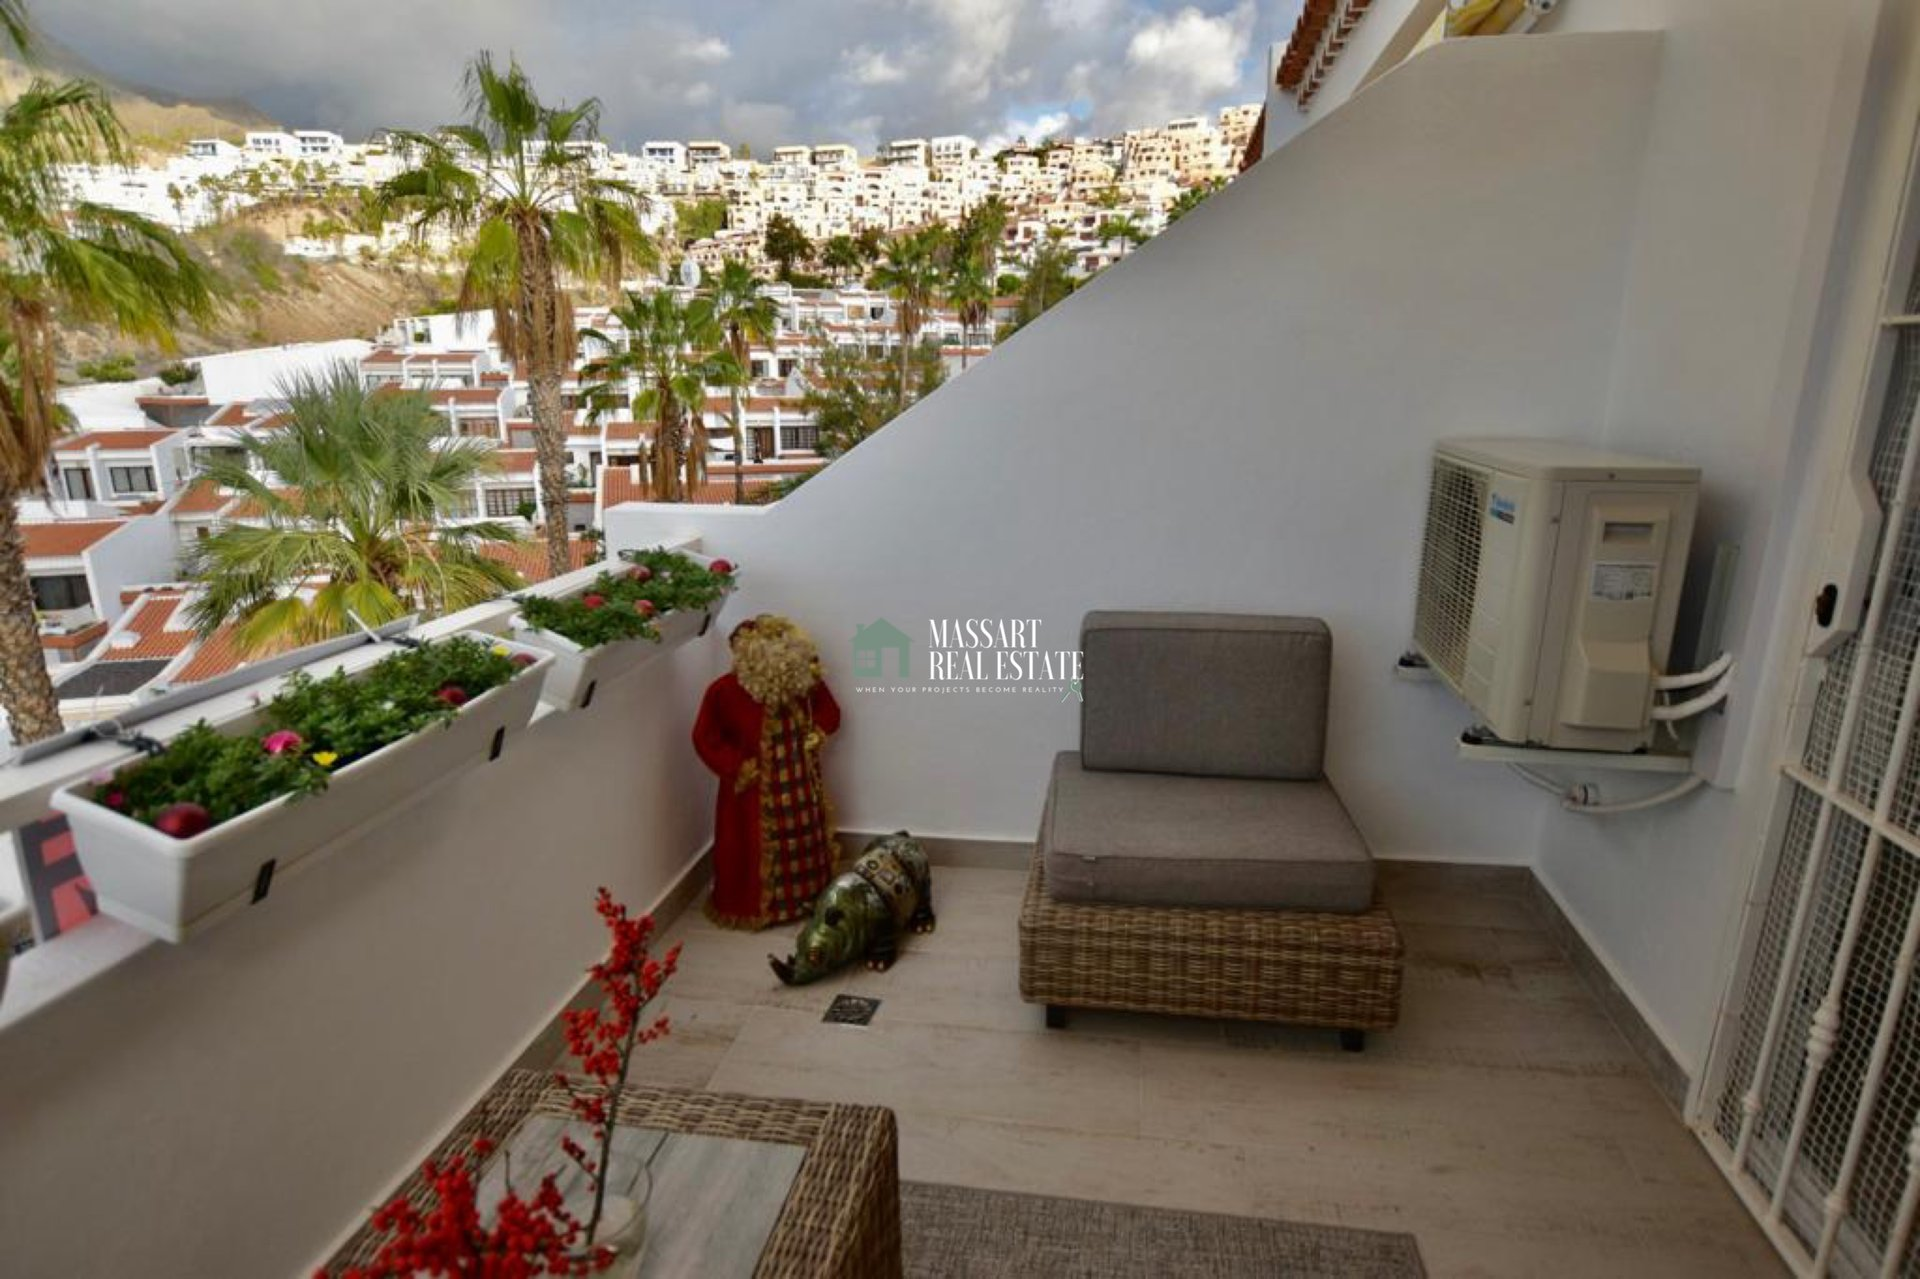 Modern apartment for sale in San Eugenio Alto (Adeje), in the Island Village Heights residential complex, characterized by offering panoramic views and wonderful sea views.